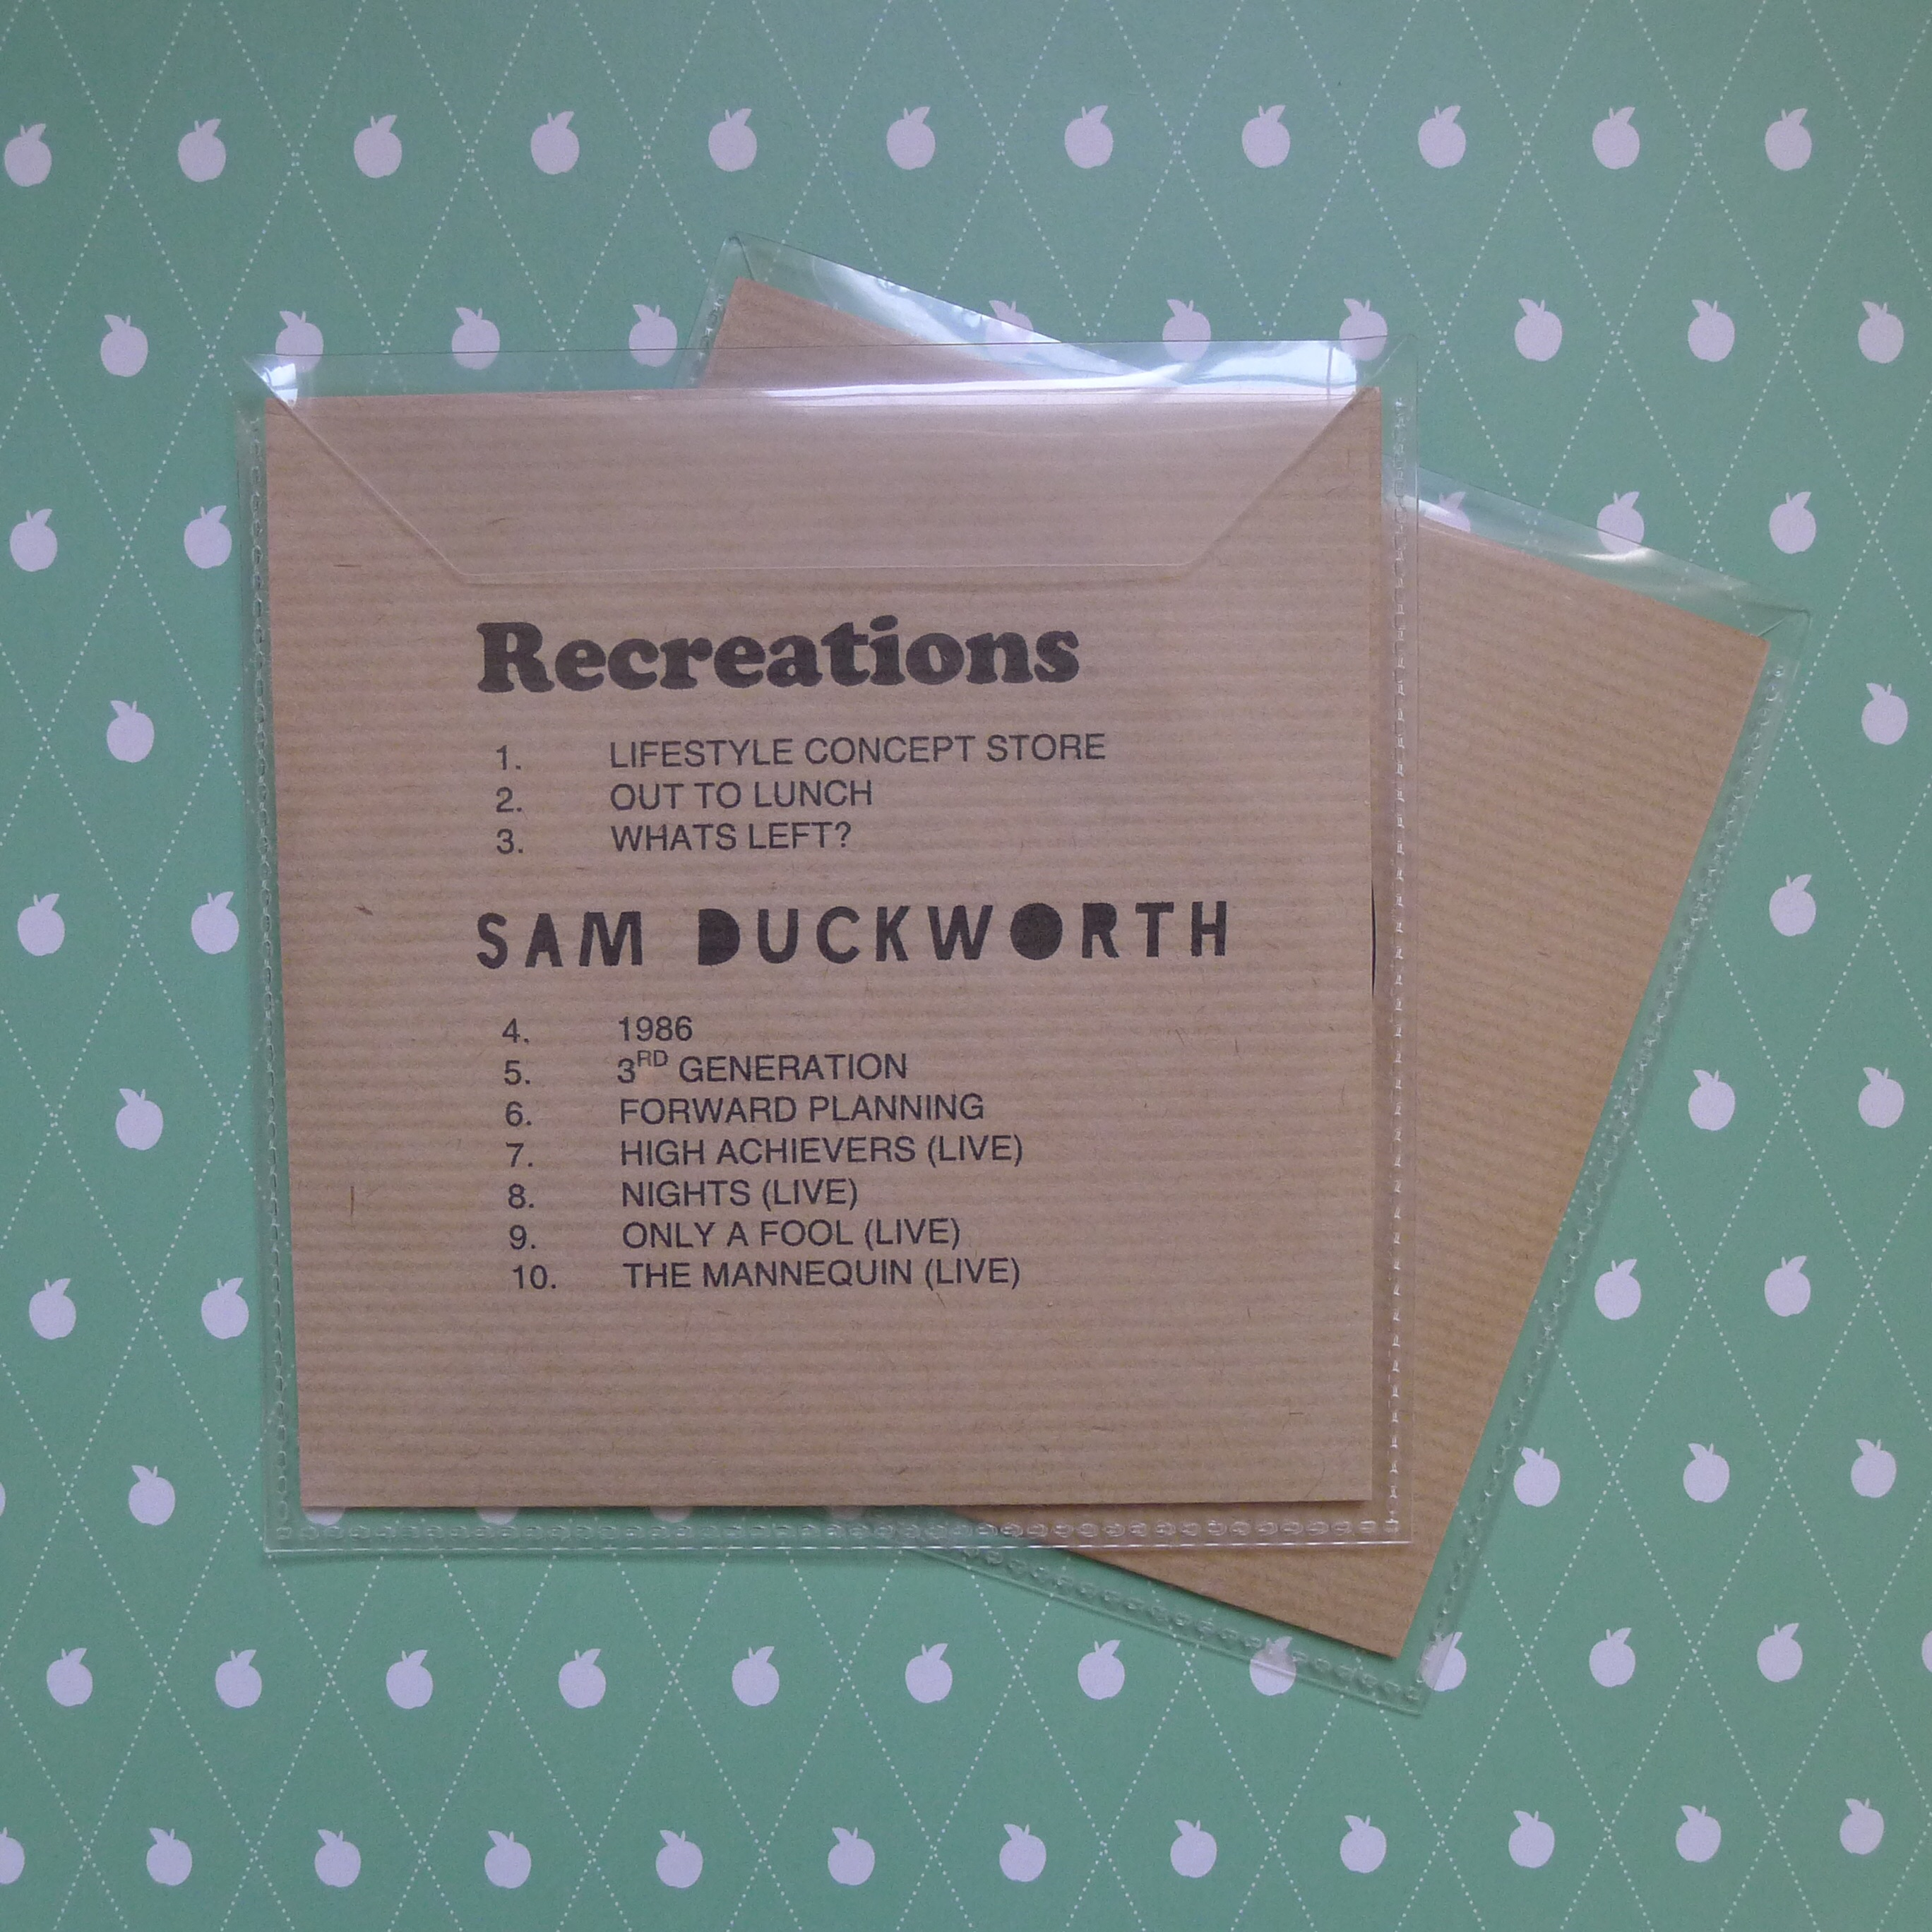 2015 Tour Bootleg (Recreations//SD Split)